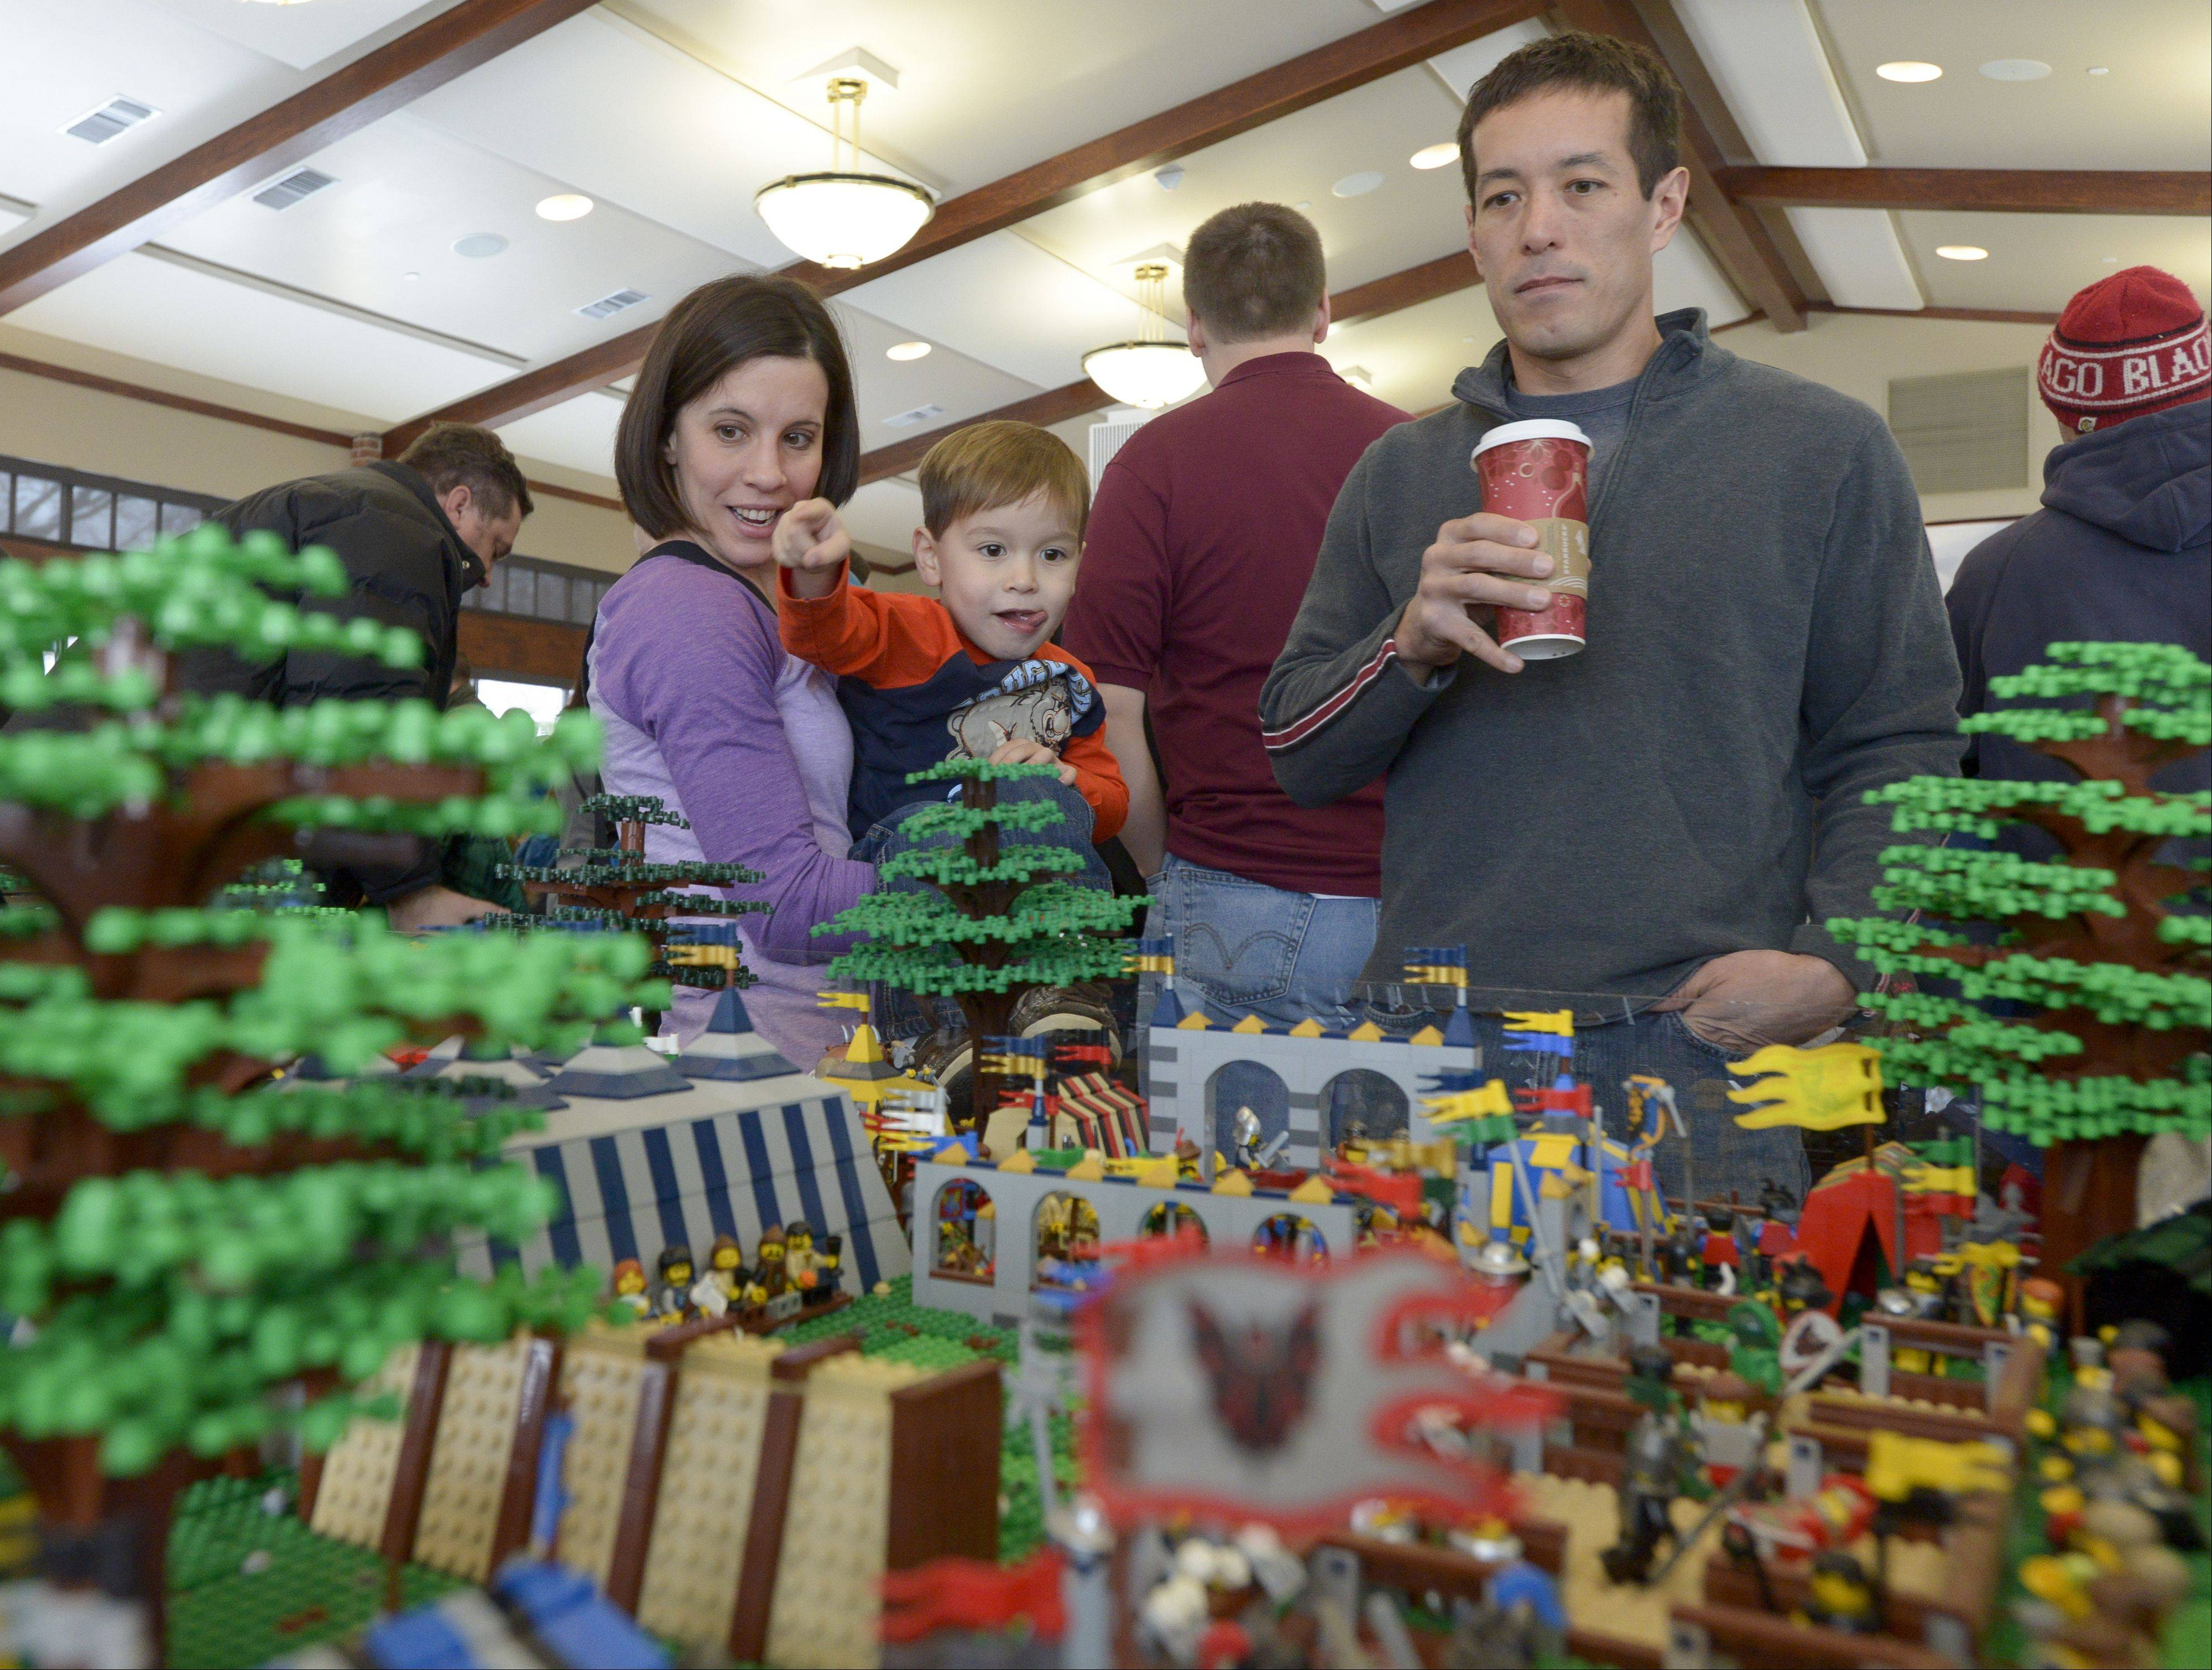 The Waterstraat family of Naperville, Liz, Max, 3 and Chris, check out some of the displays setup by the Northern Illinois Lego Train Club during the 12th annual Lego Train Show and Party on Sunday at Wheaton�s Cantigny Park.